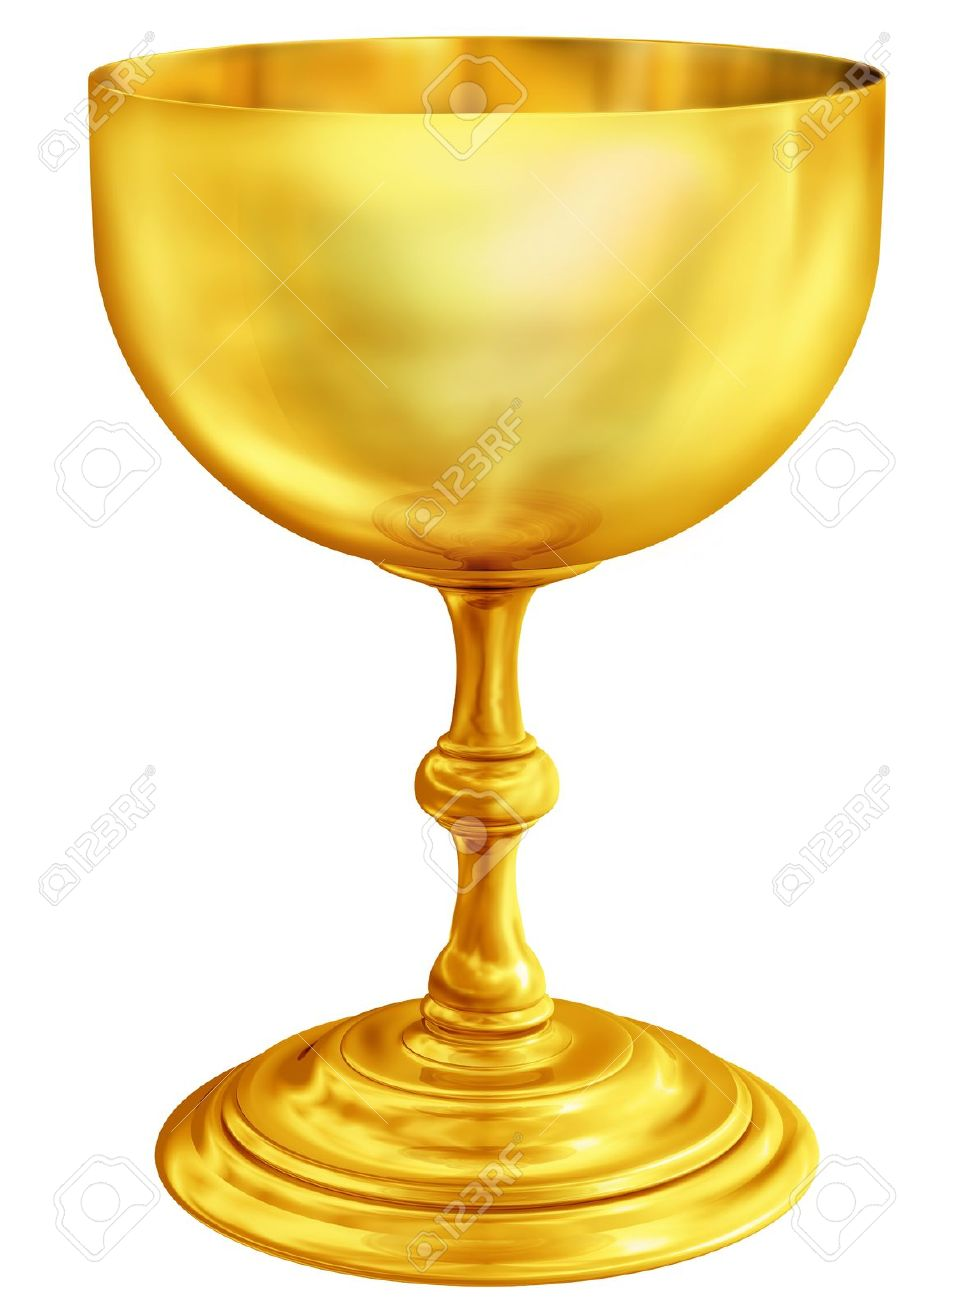 1,843 Chalice Stock Vector Illustration And Royalty Free Chalice.